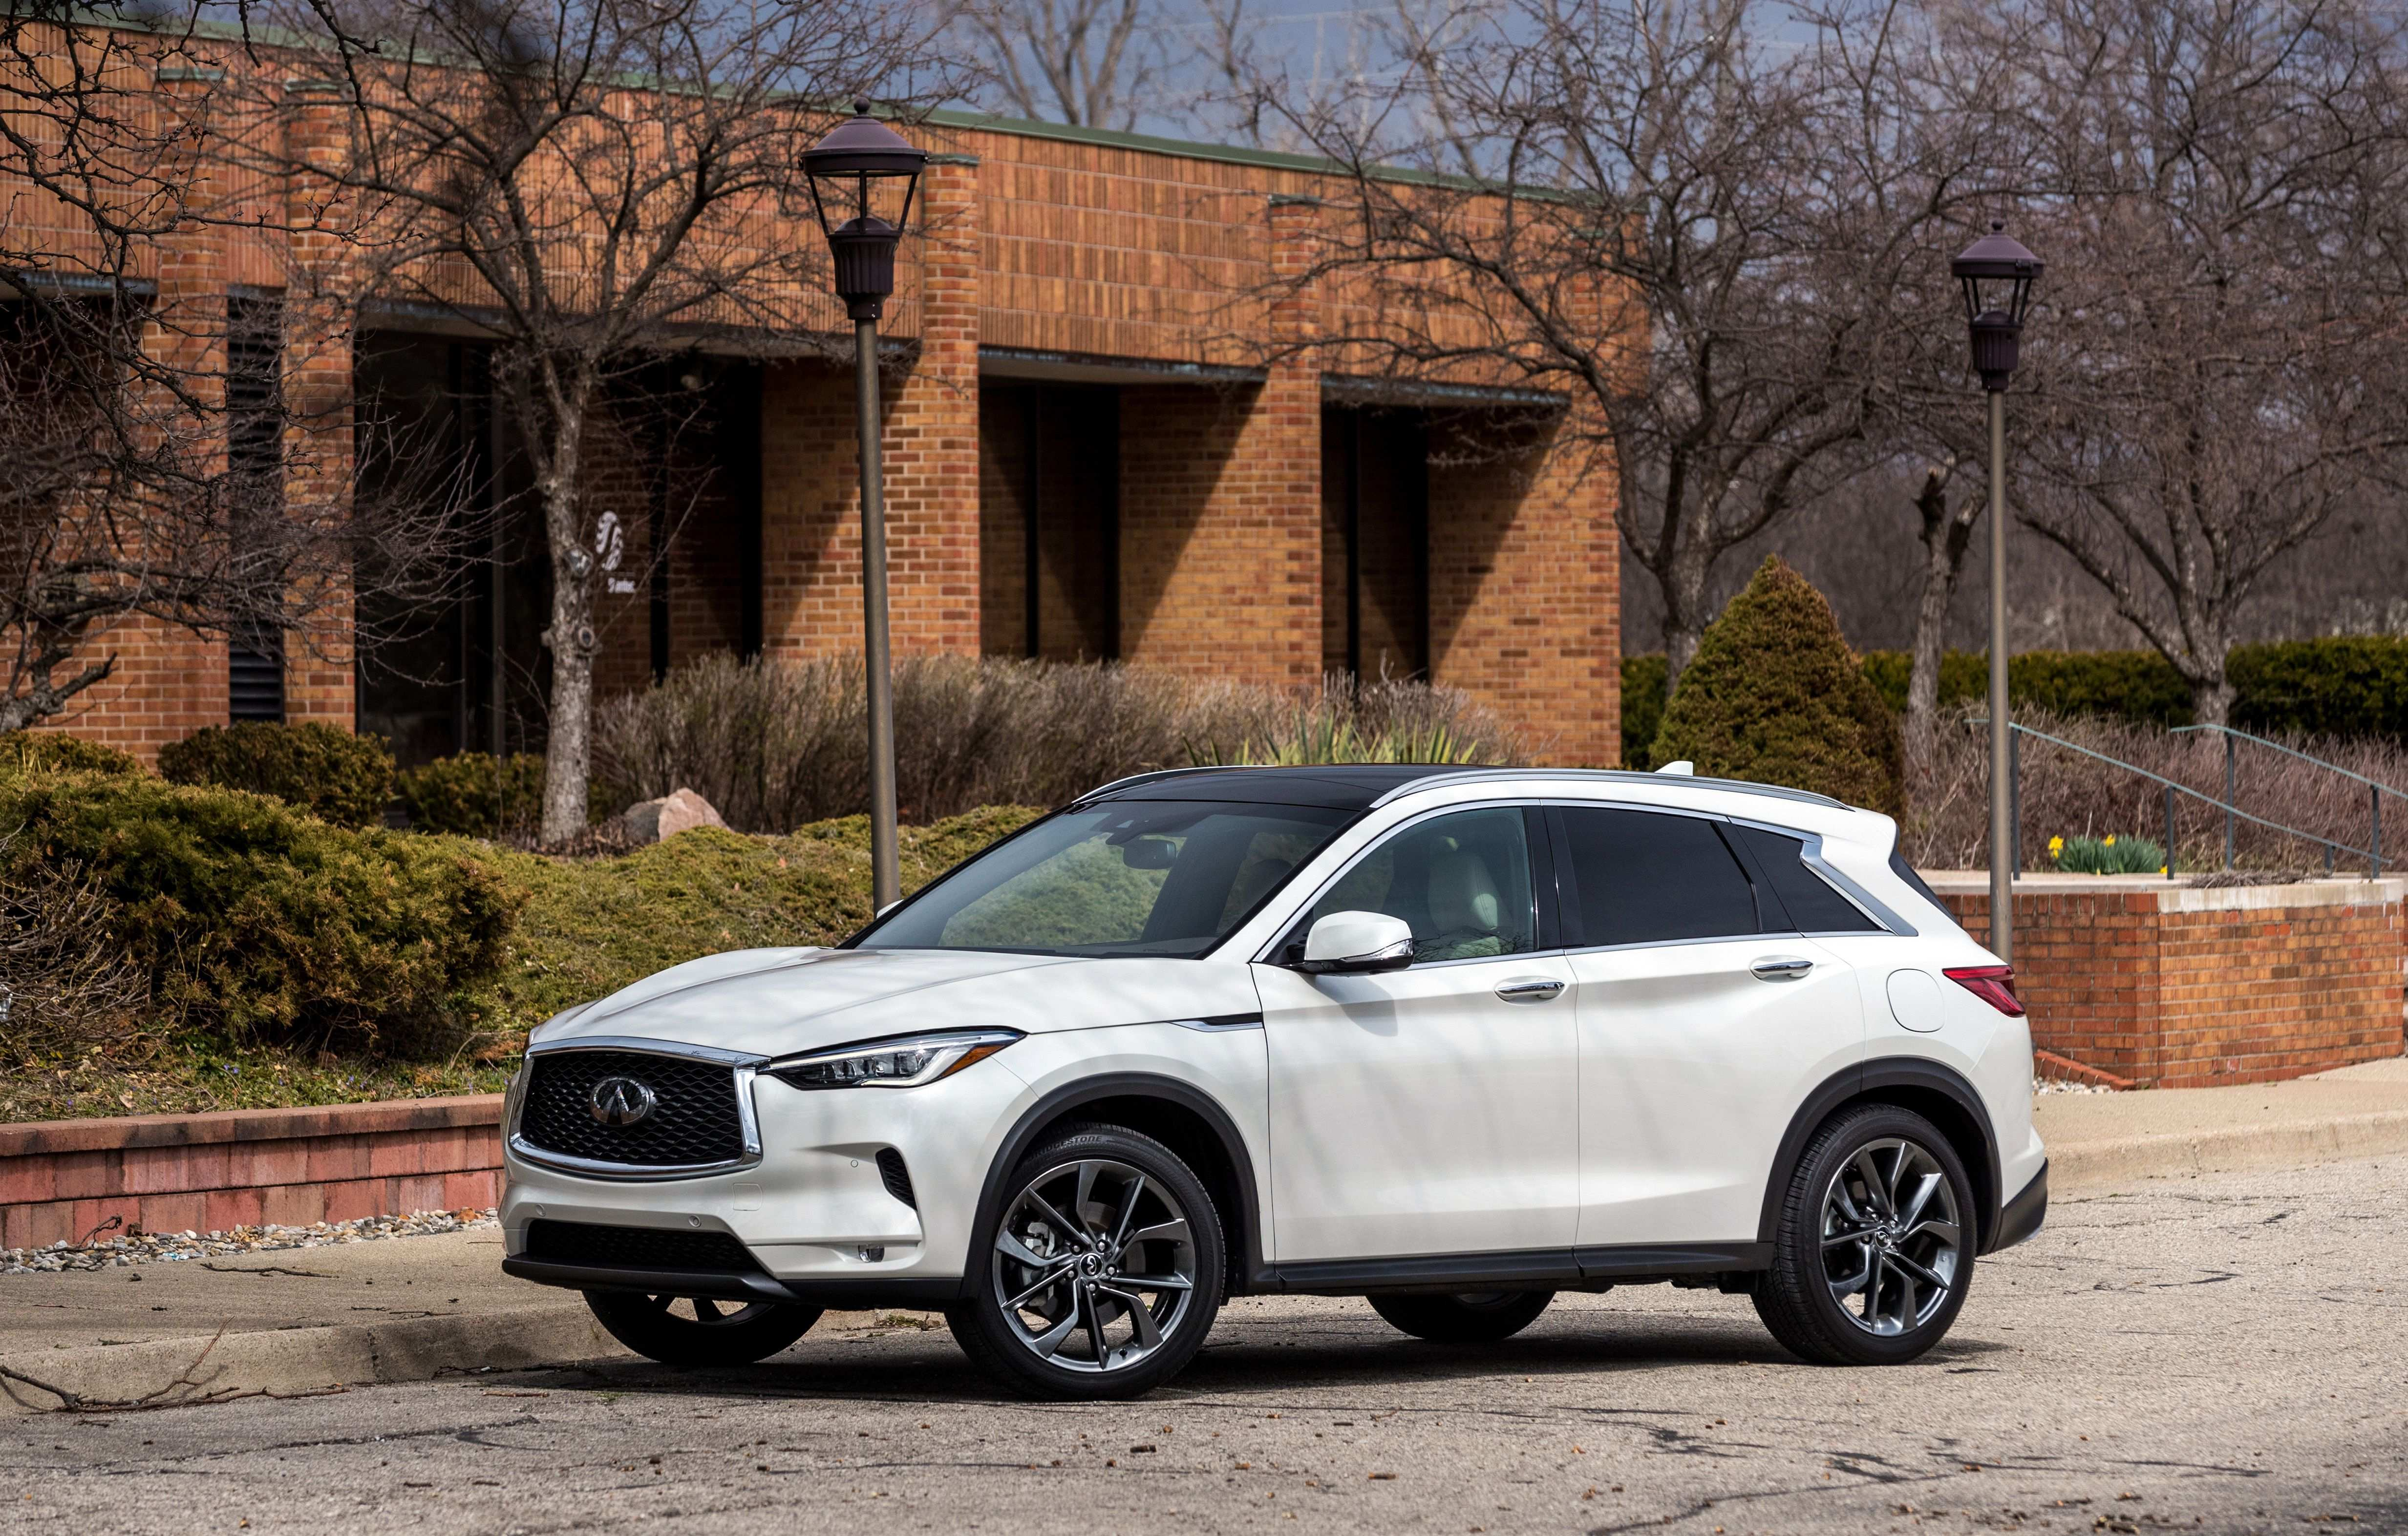 68 A 2019 Infiniti Qx50 Wiki Price And Review